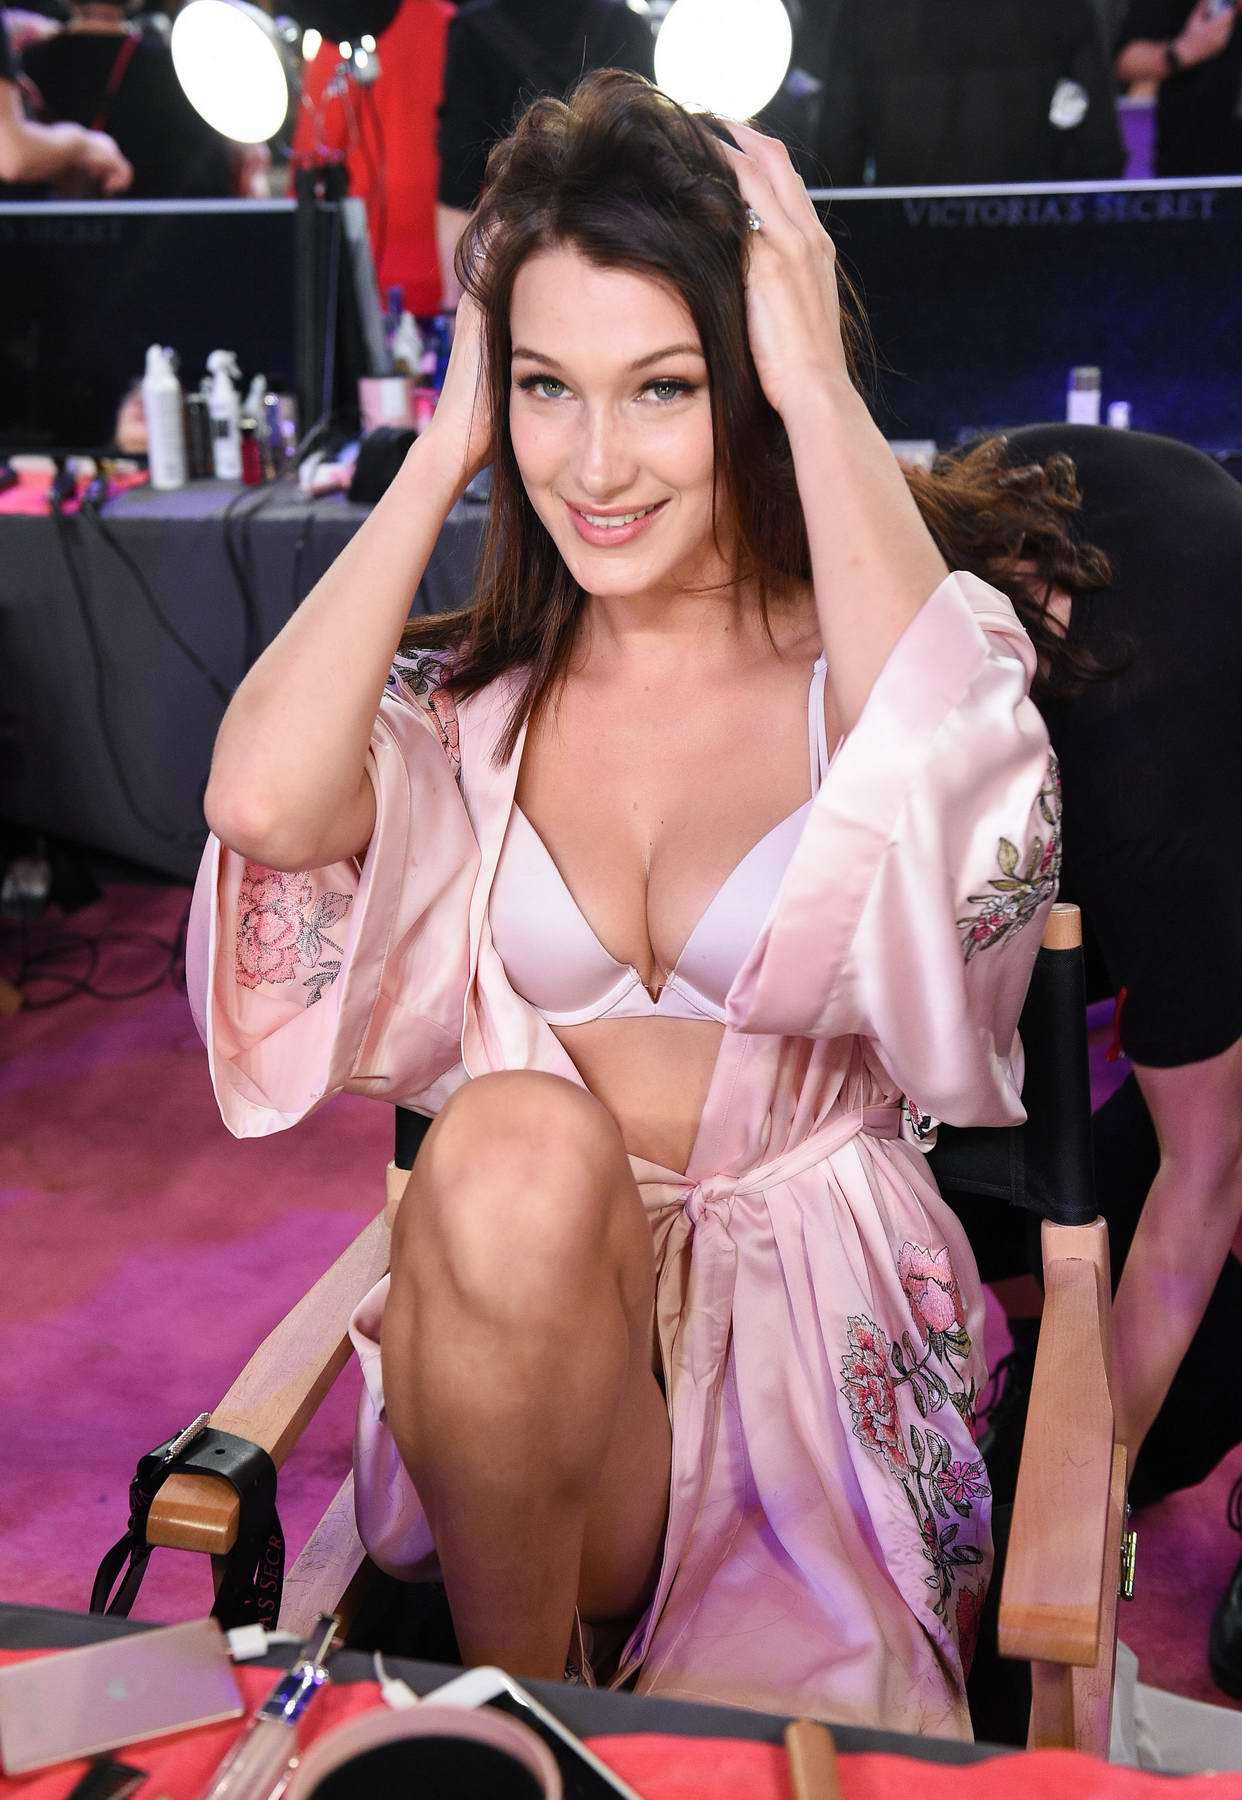 Bella Hadid at backstage of Victoria's Secret fashion show in Shanghai, China